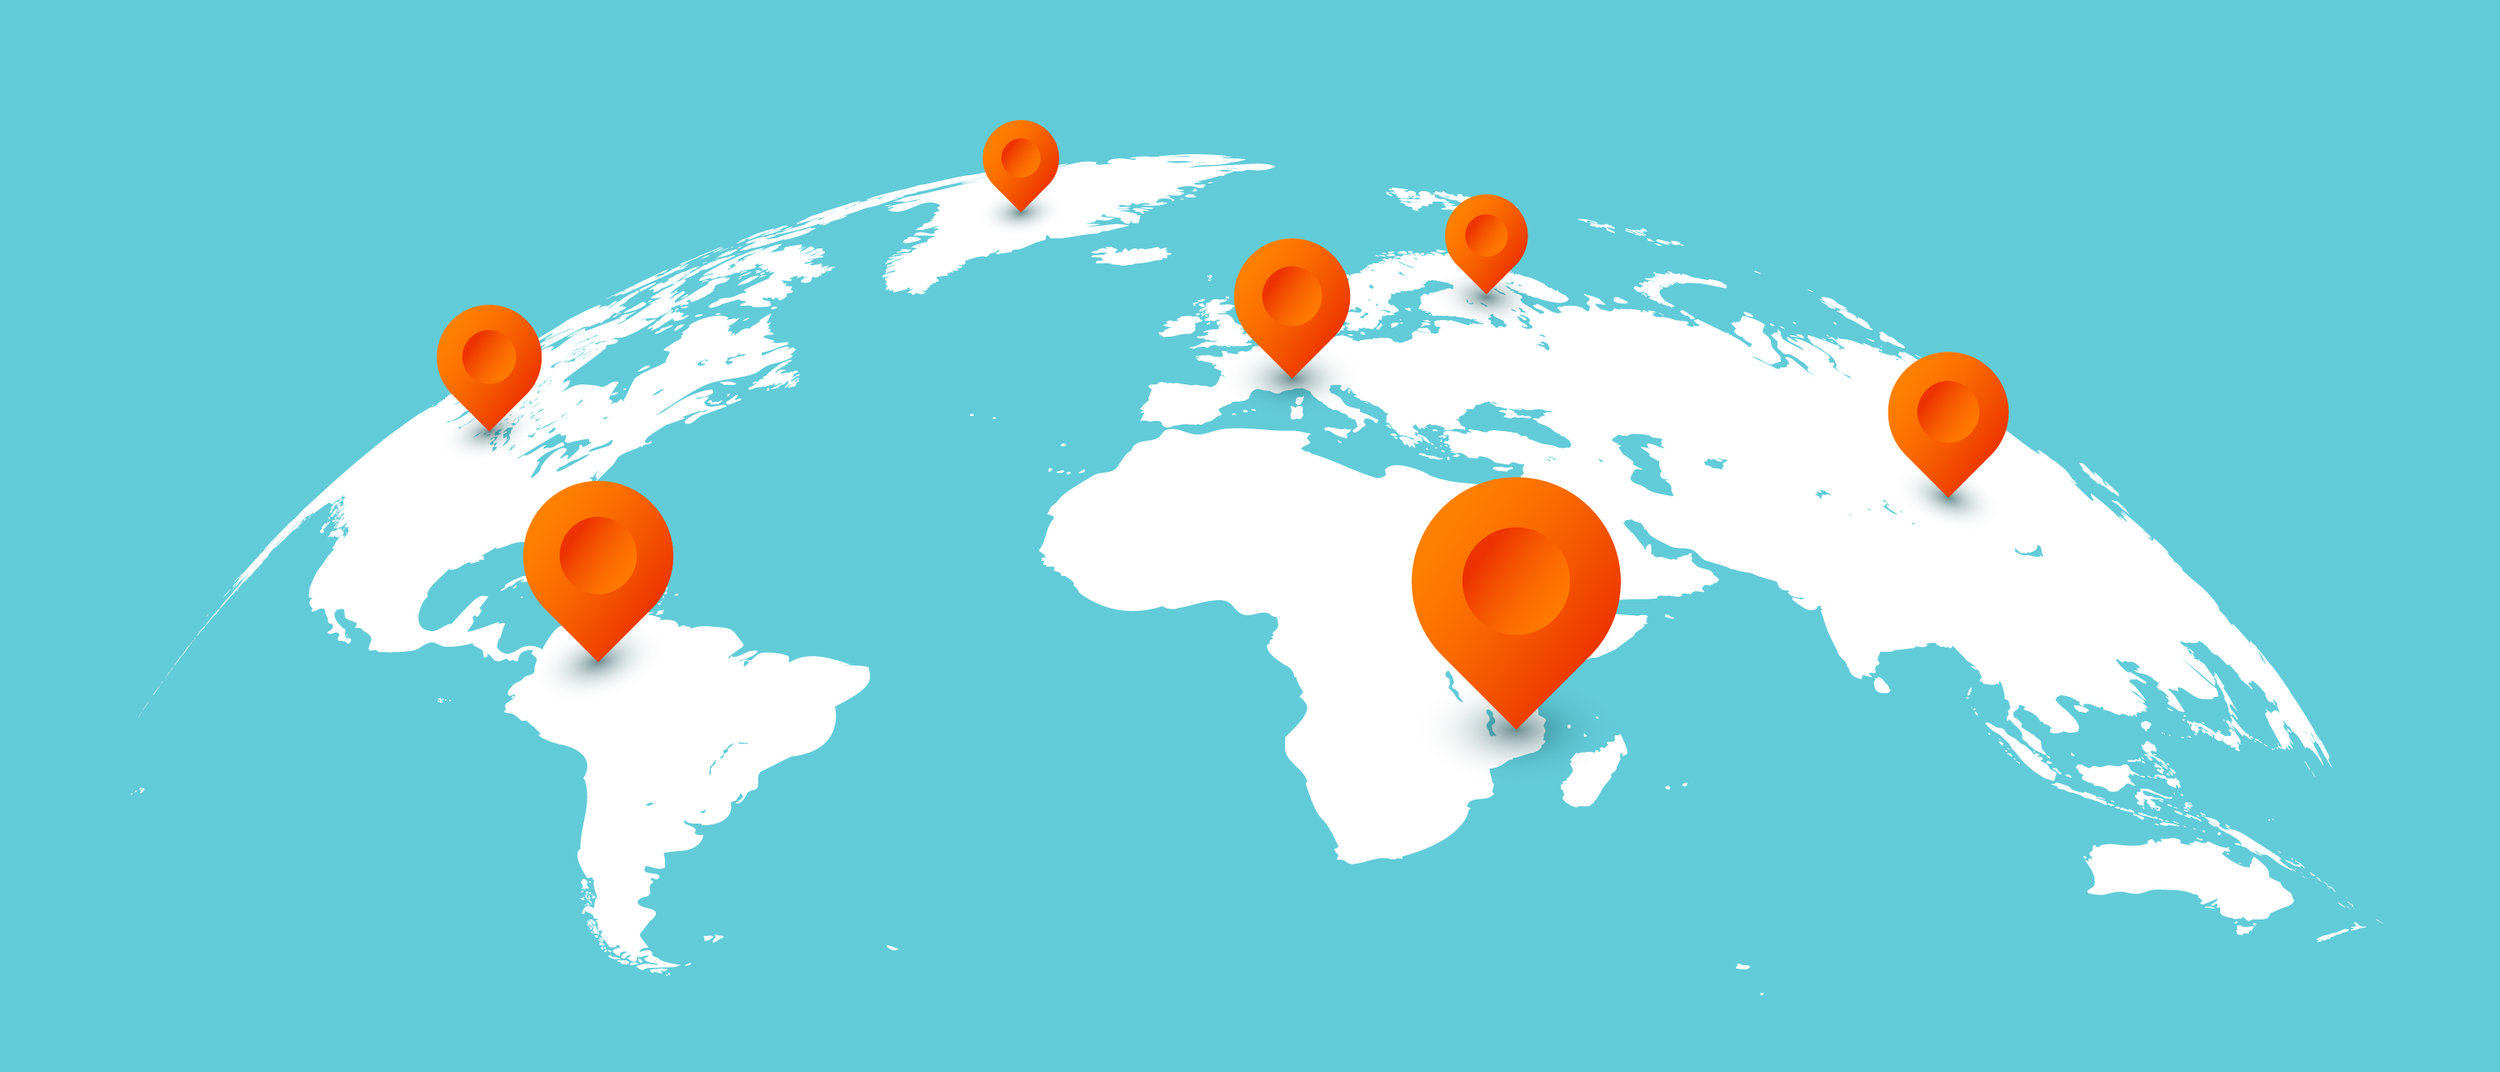 Global Chapters - As of August 2019 we have chapters in Karachi, Pakistan and Sanaa, Yemen. We invite and encourage you to explore this approach with us.